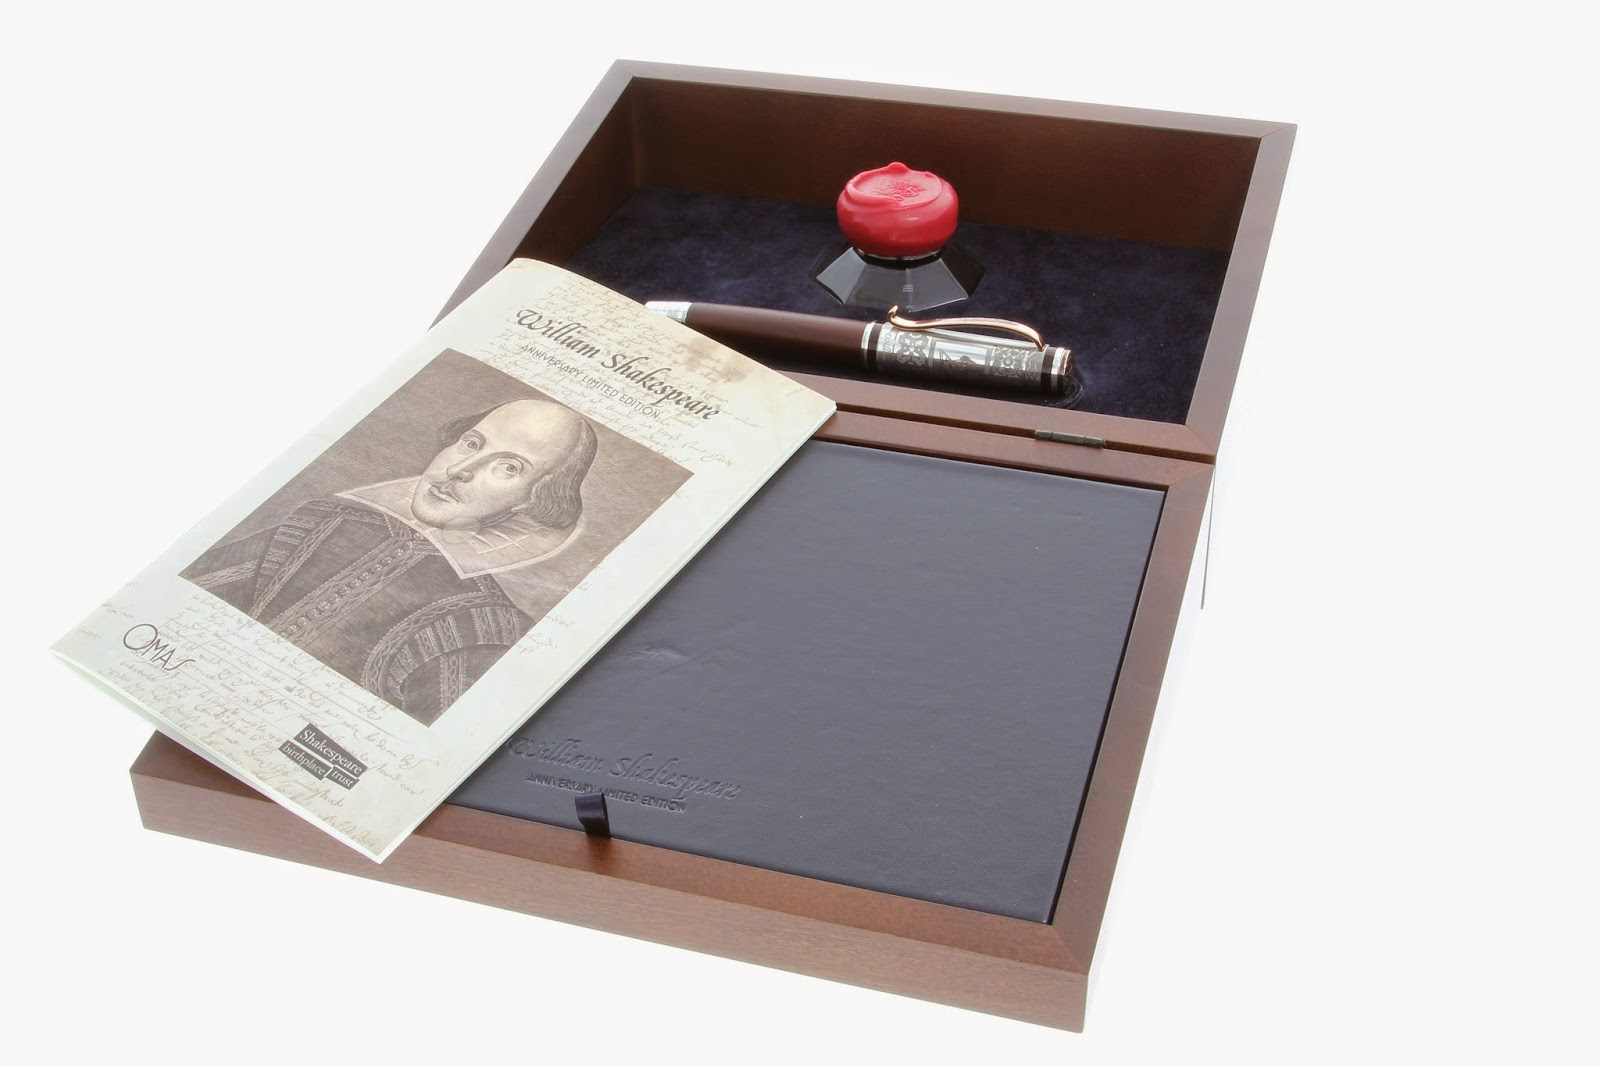 A 360 Look at the OMAS William Shakespeare Limited Edition